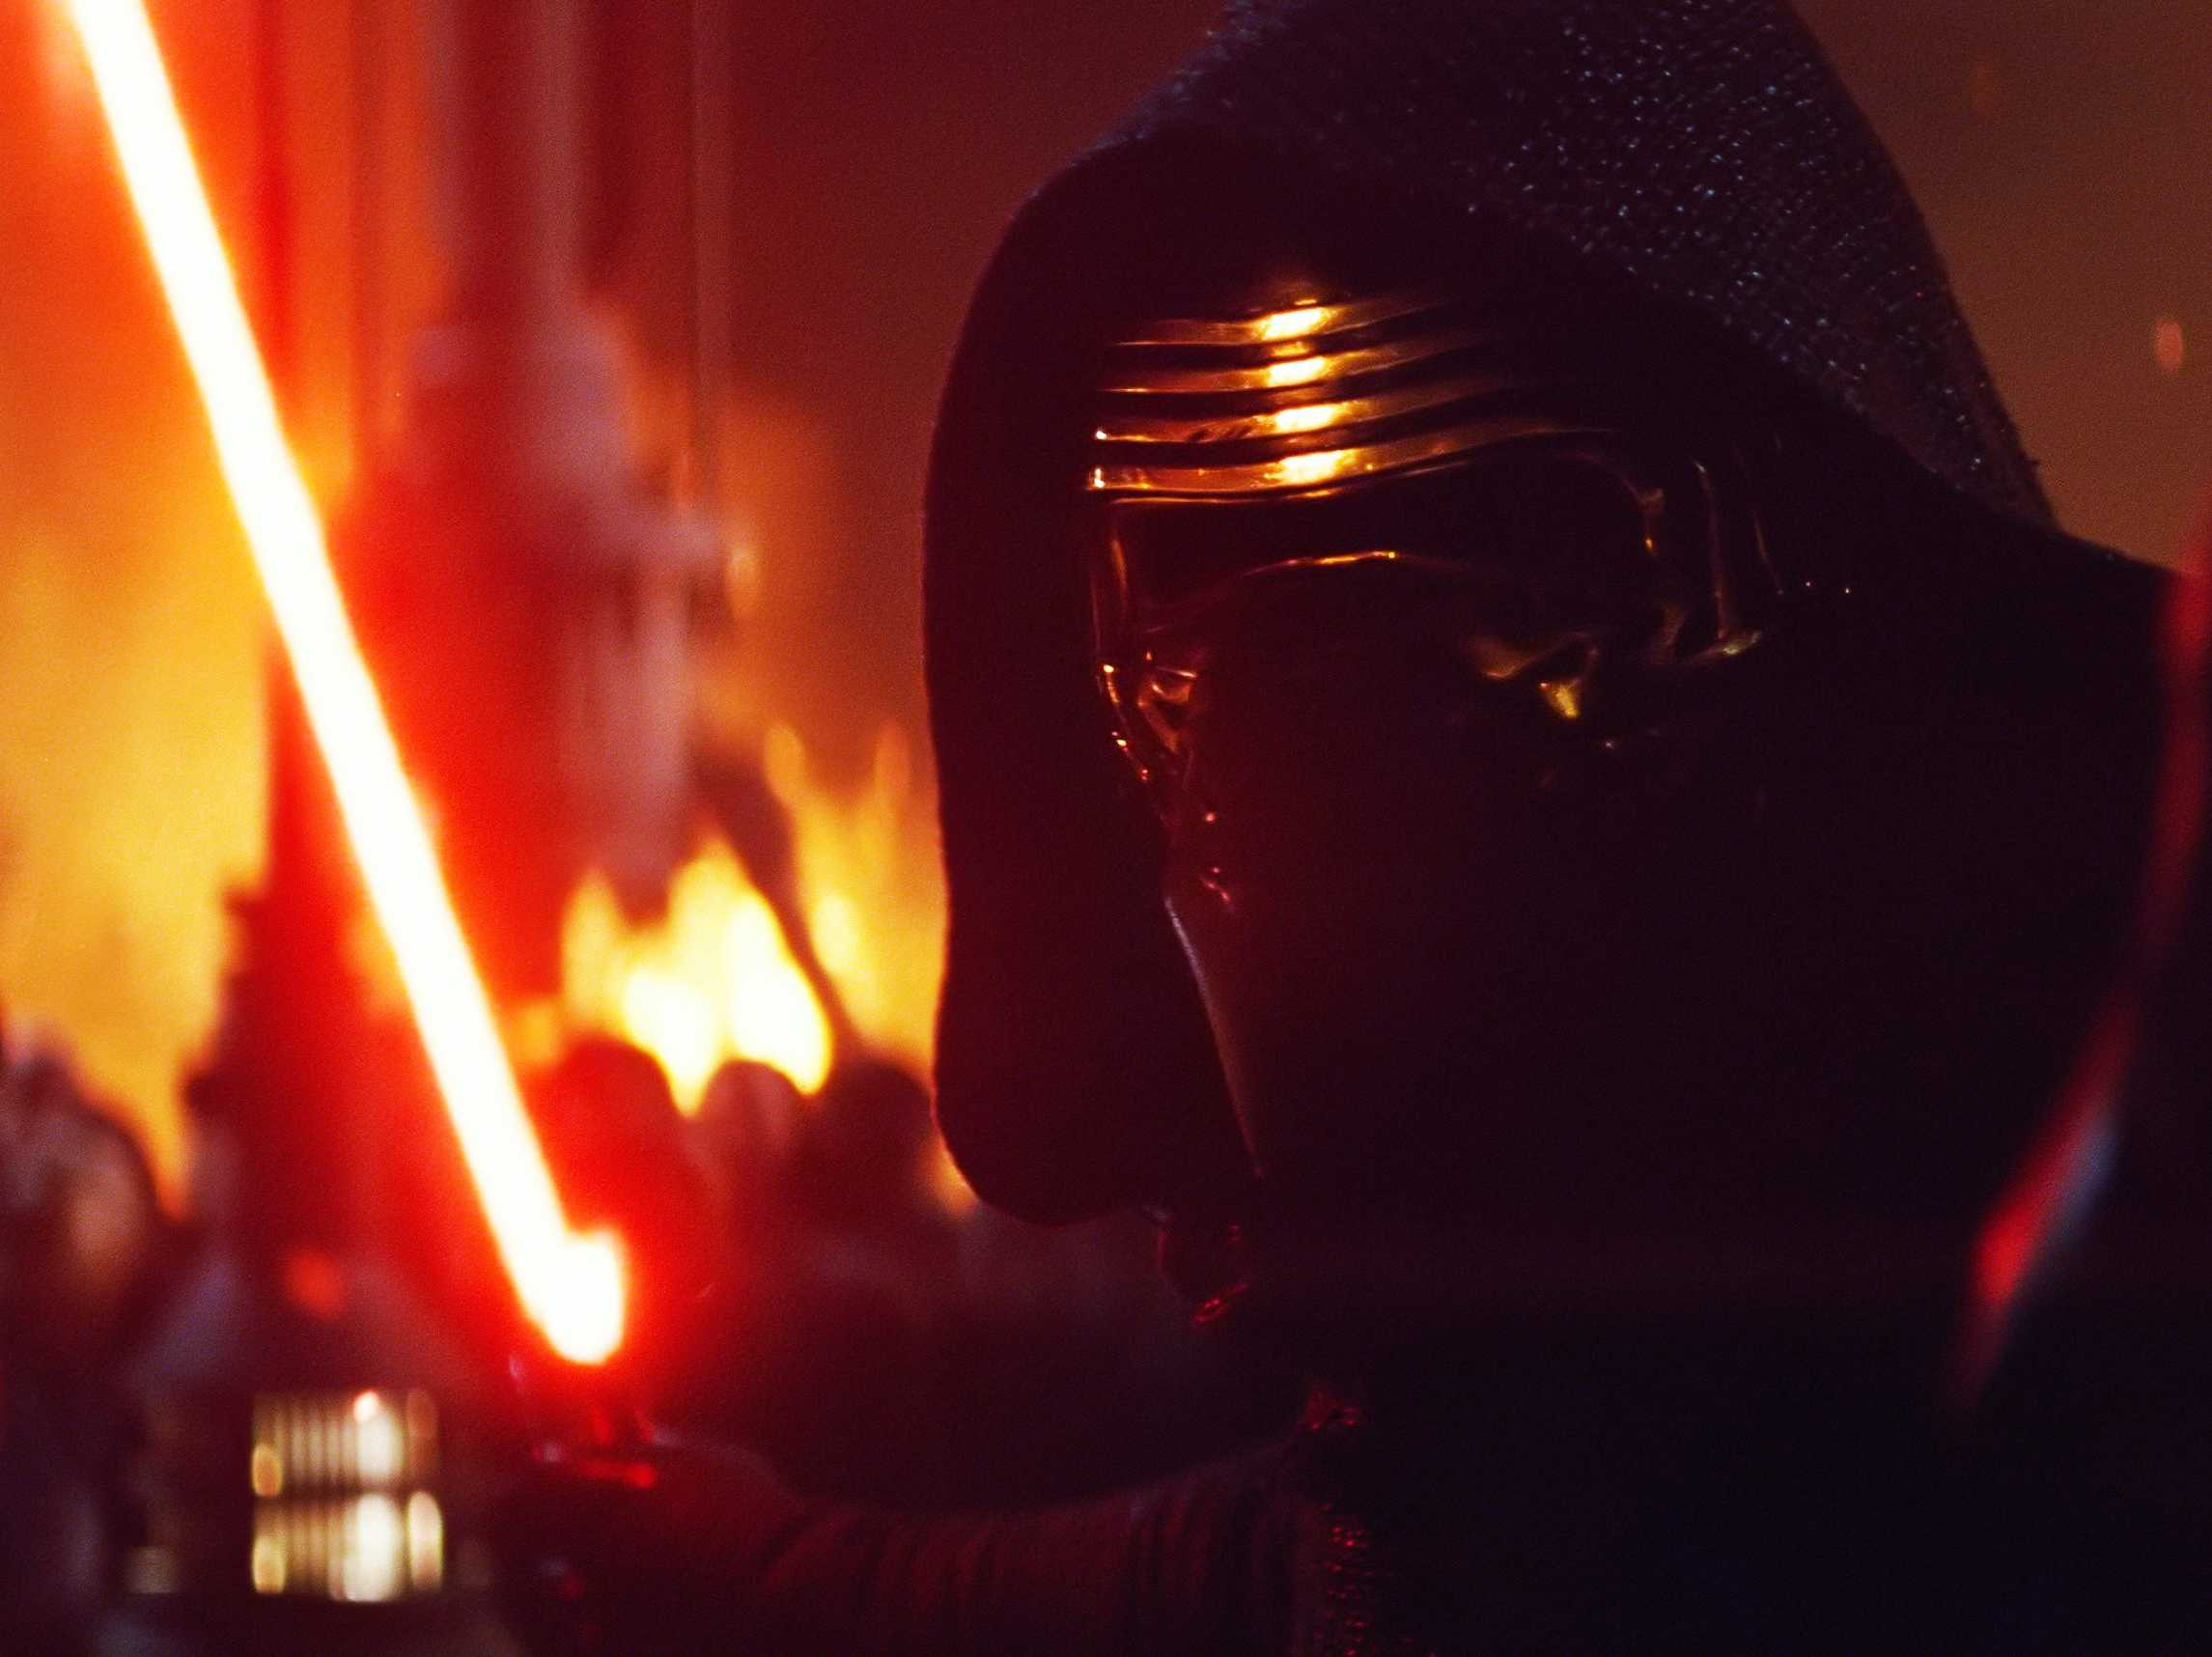 Director Rian Johnson explains why Kylo Ren's scar is different in Star Wars: The Last Jedi